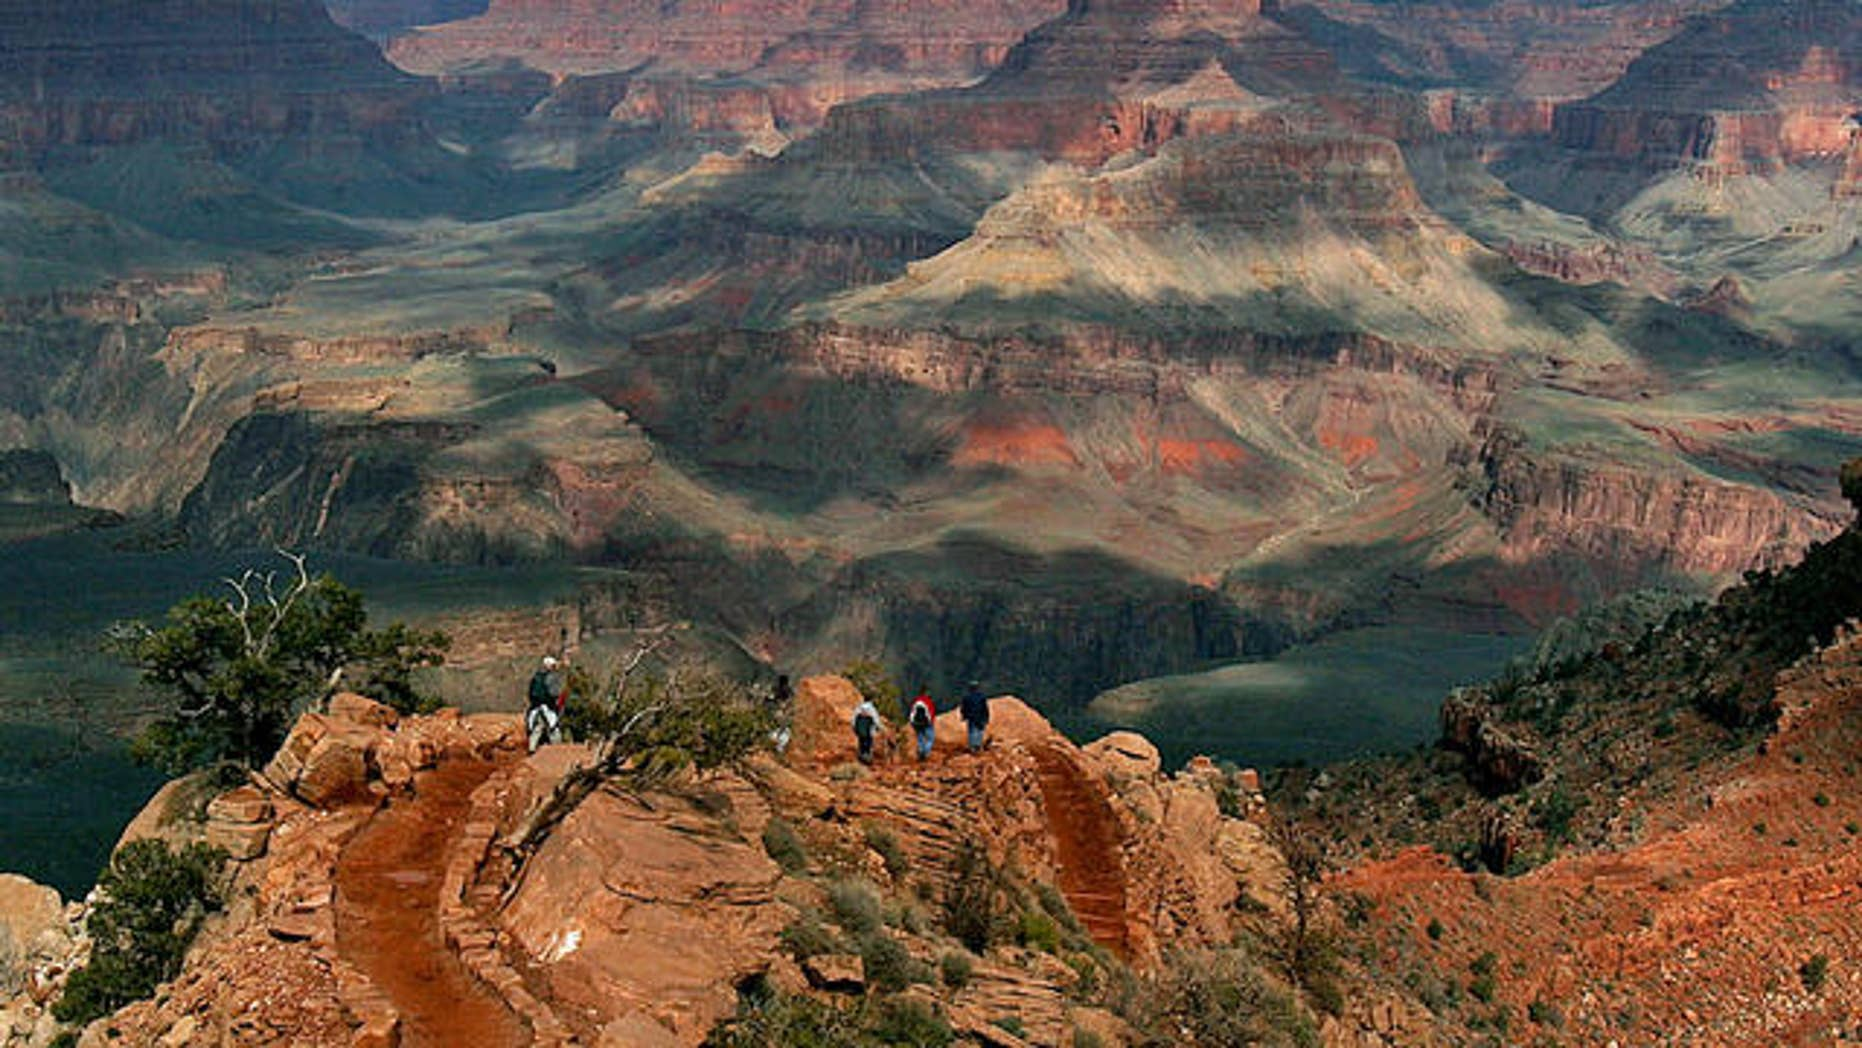 With the North Rim in the background, tourists hike along the South Rim of the Grand Canyon Tuesday, Feb. 22, 2005.